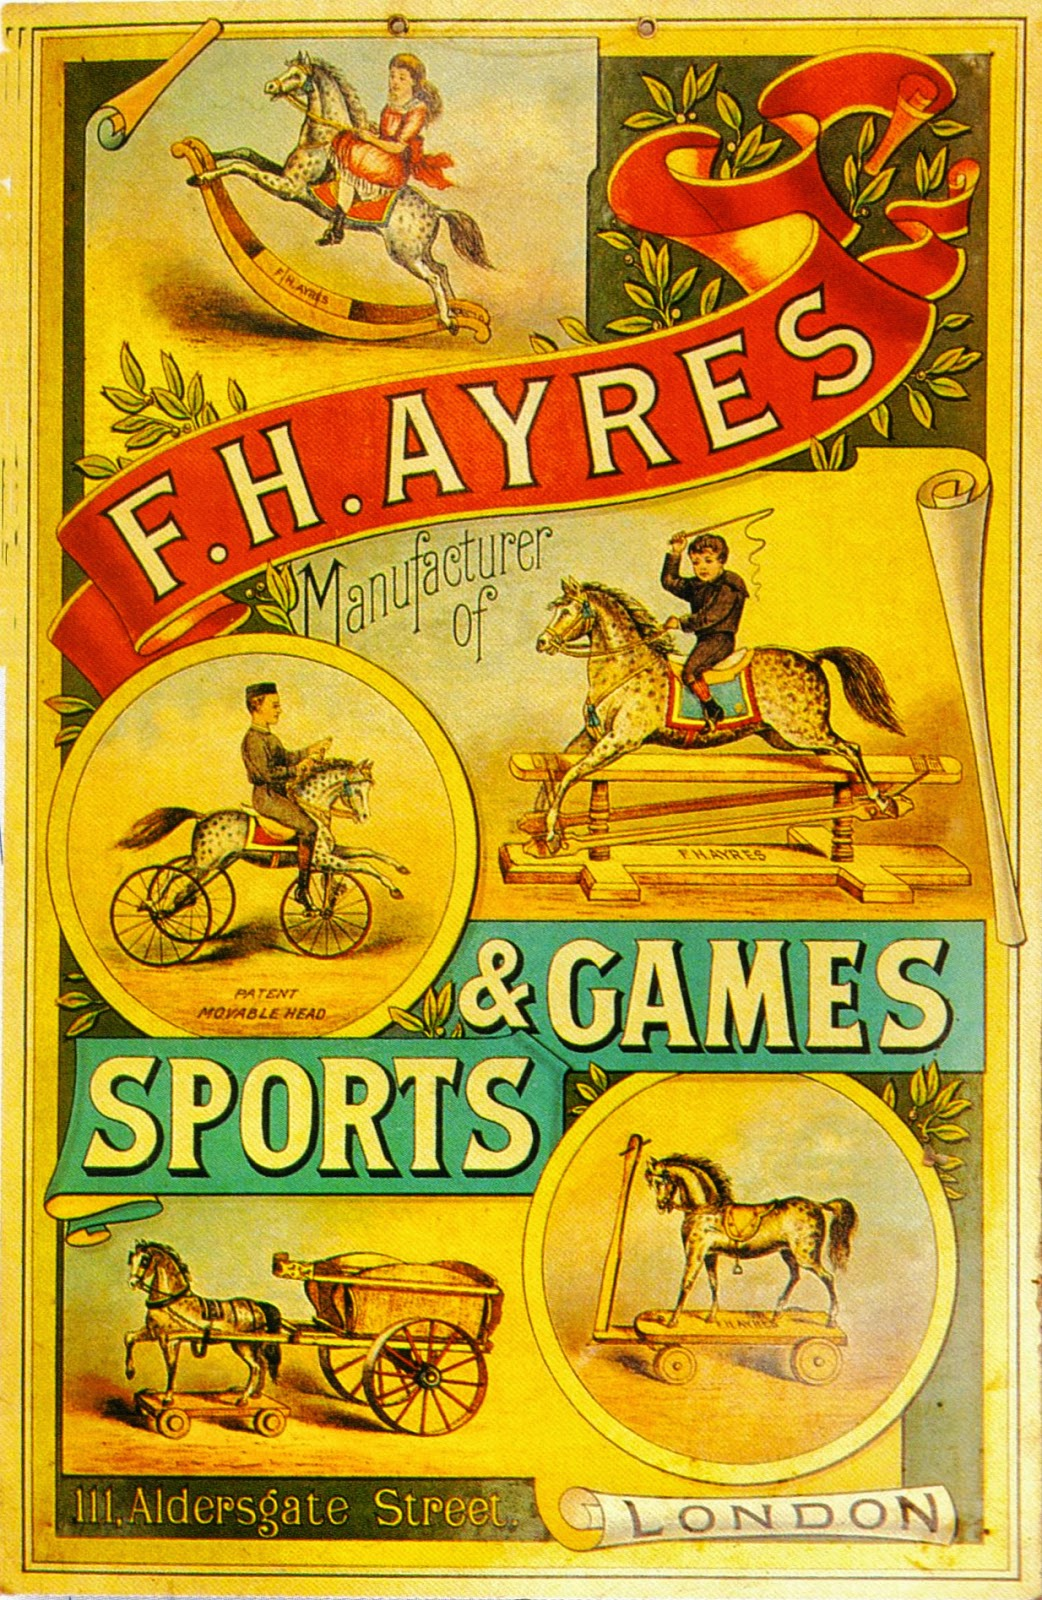 Vintage toy advertisement from late 1800s